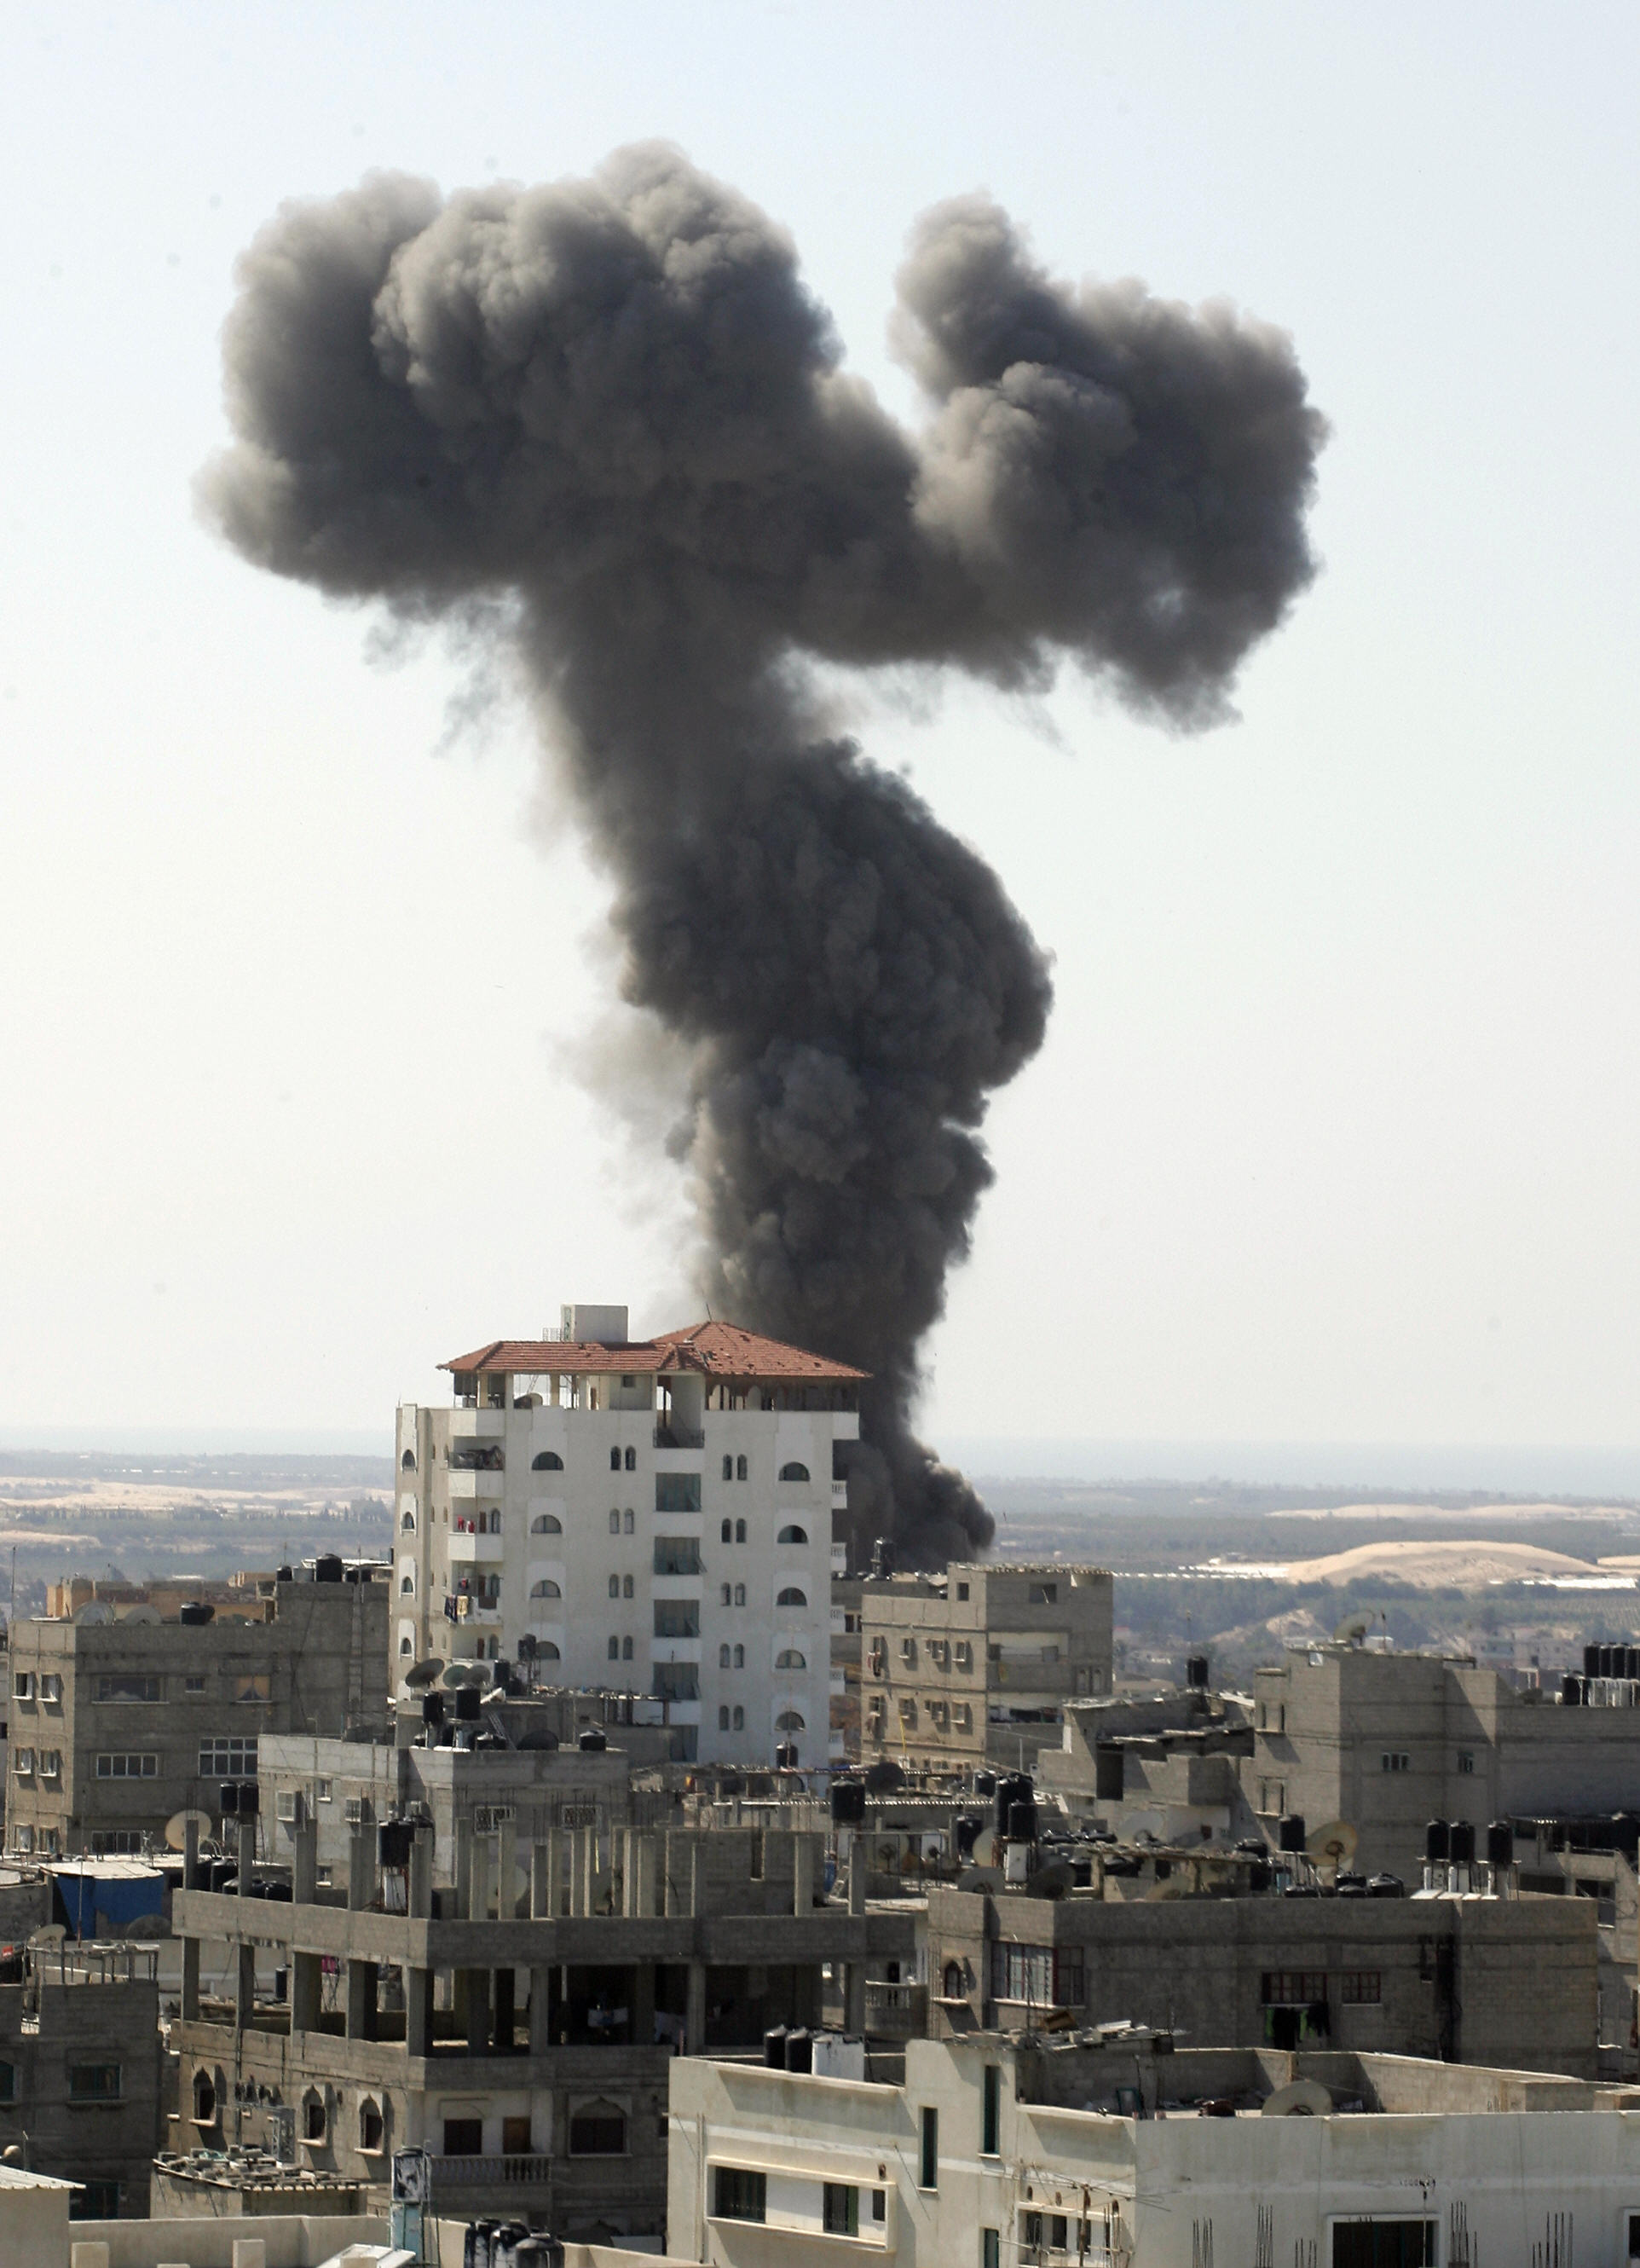 SAID KHATIB/AFP/Getty Images. Israeli warplanes launched two air strikes along the Gaza Strip's border with Egypt as delegates from three Palestinian factions were crossing at a nearby terminal, witnesses said.